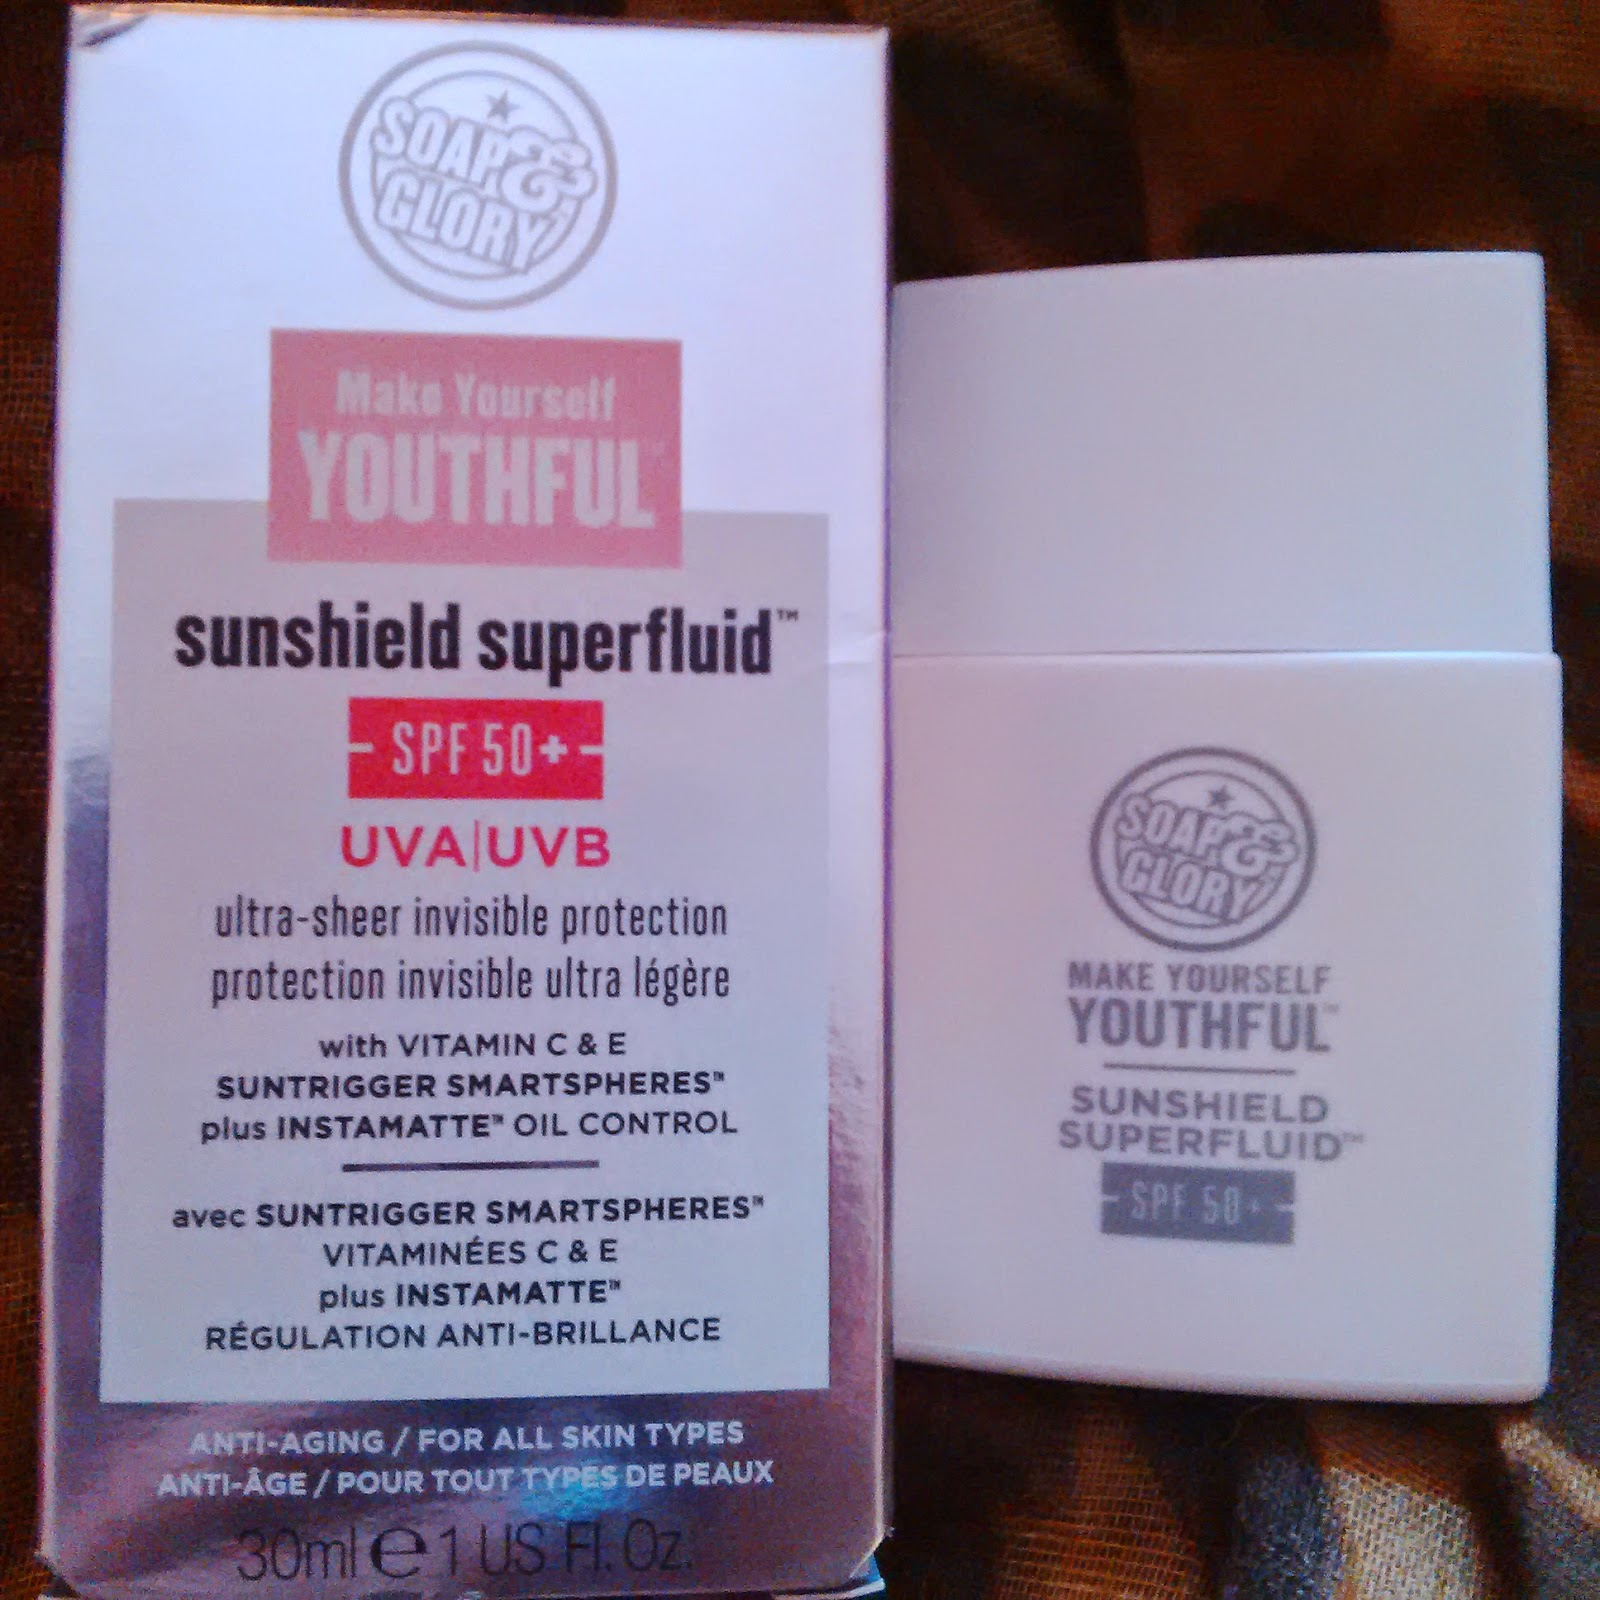 Soap and Glory Make Yourself Youthful Sunshield Superfluid SPF50